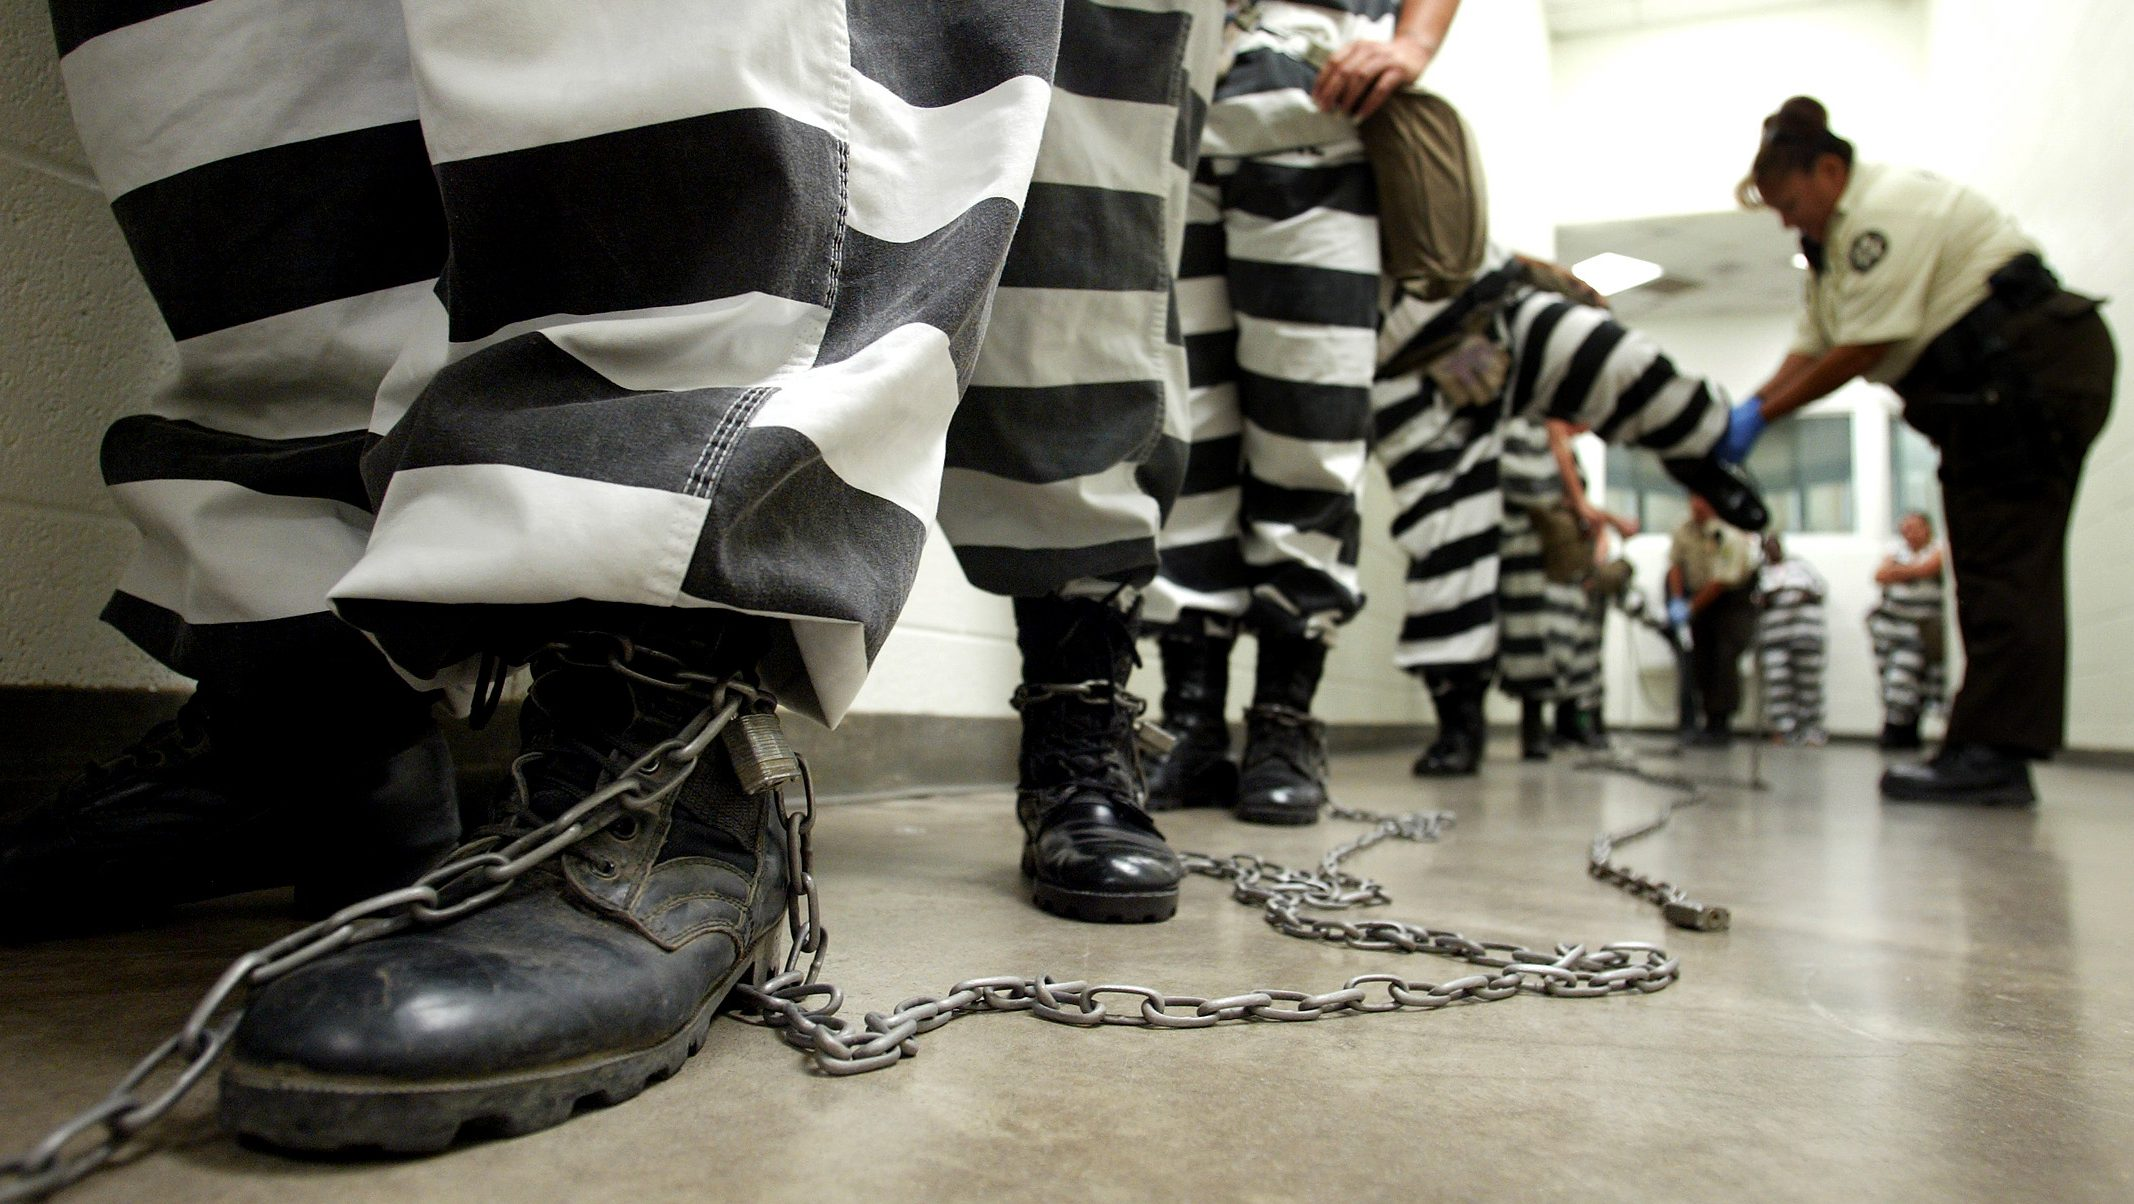 Maricopa County female inmates are padlocked by the ankle for chain gang duty in Phoenix, Arizona October 21, 2003. The women are padlocked together by the ankle and marched military style to a van to be transported to their work site. The women volunteer for chain gang duty to get out of lockdown, where four prisoners are shut in a cell 8 x 12 feet wide 23 hours day. If they spend 30 days on the chain gang, picking up trash, weeding or burying bodies, they can get out of the punishment cell.  Pictures of the month October 2003. REUTERS/Shannon Stapleton PP03100138  SS - RTR5Y7H